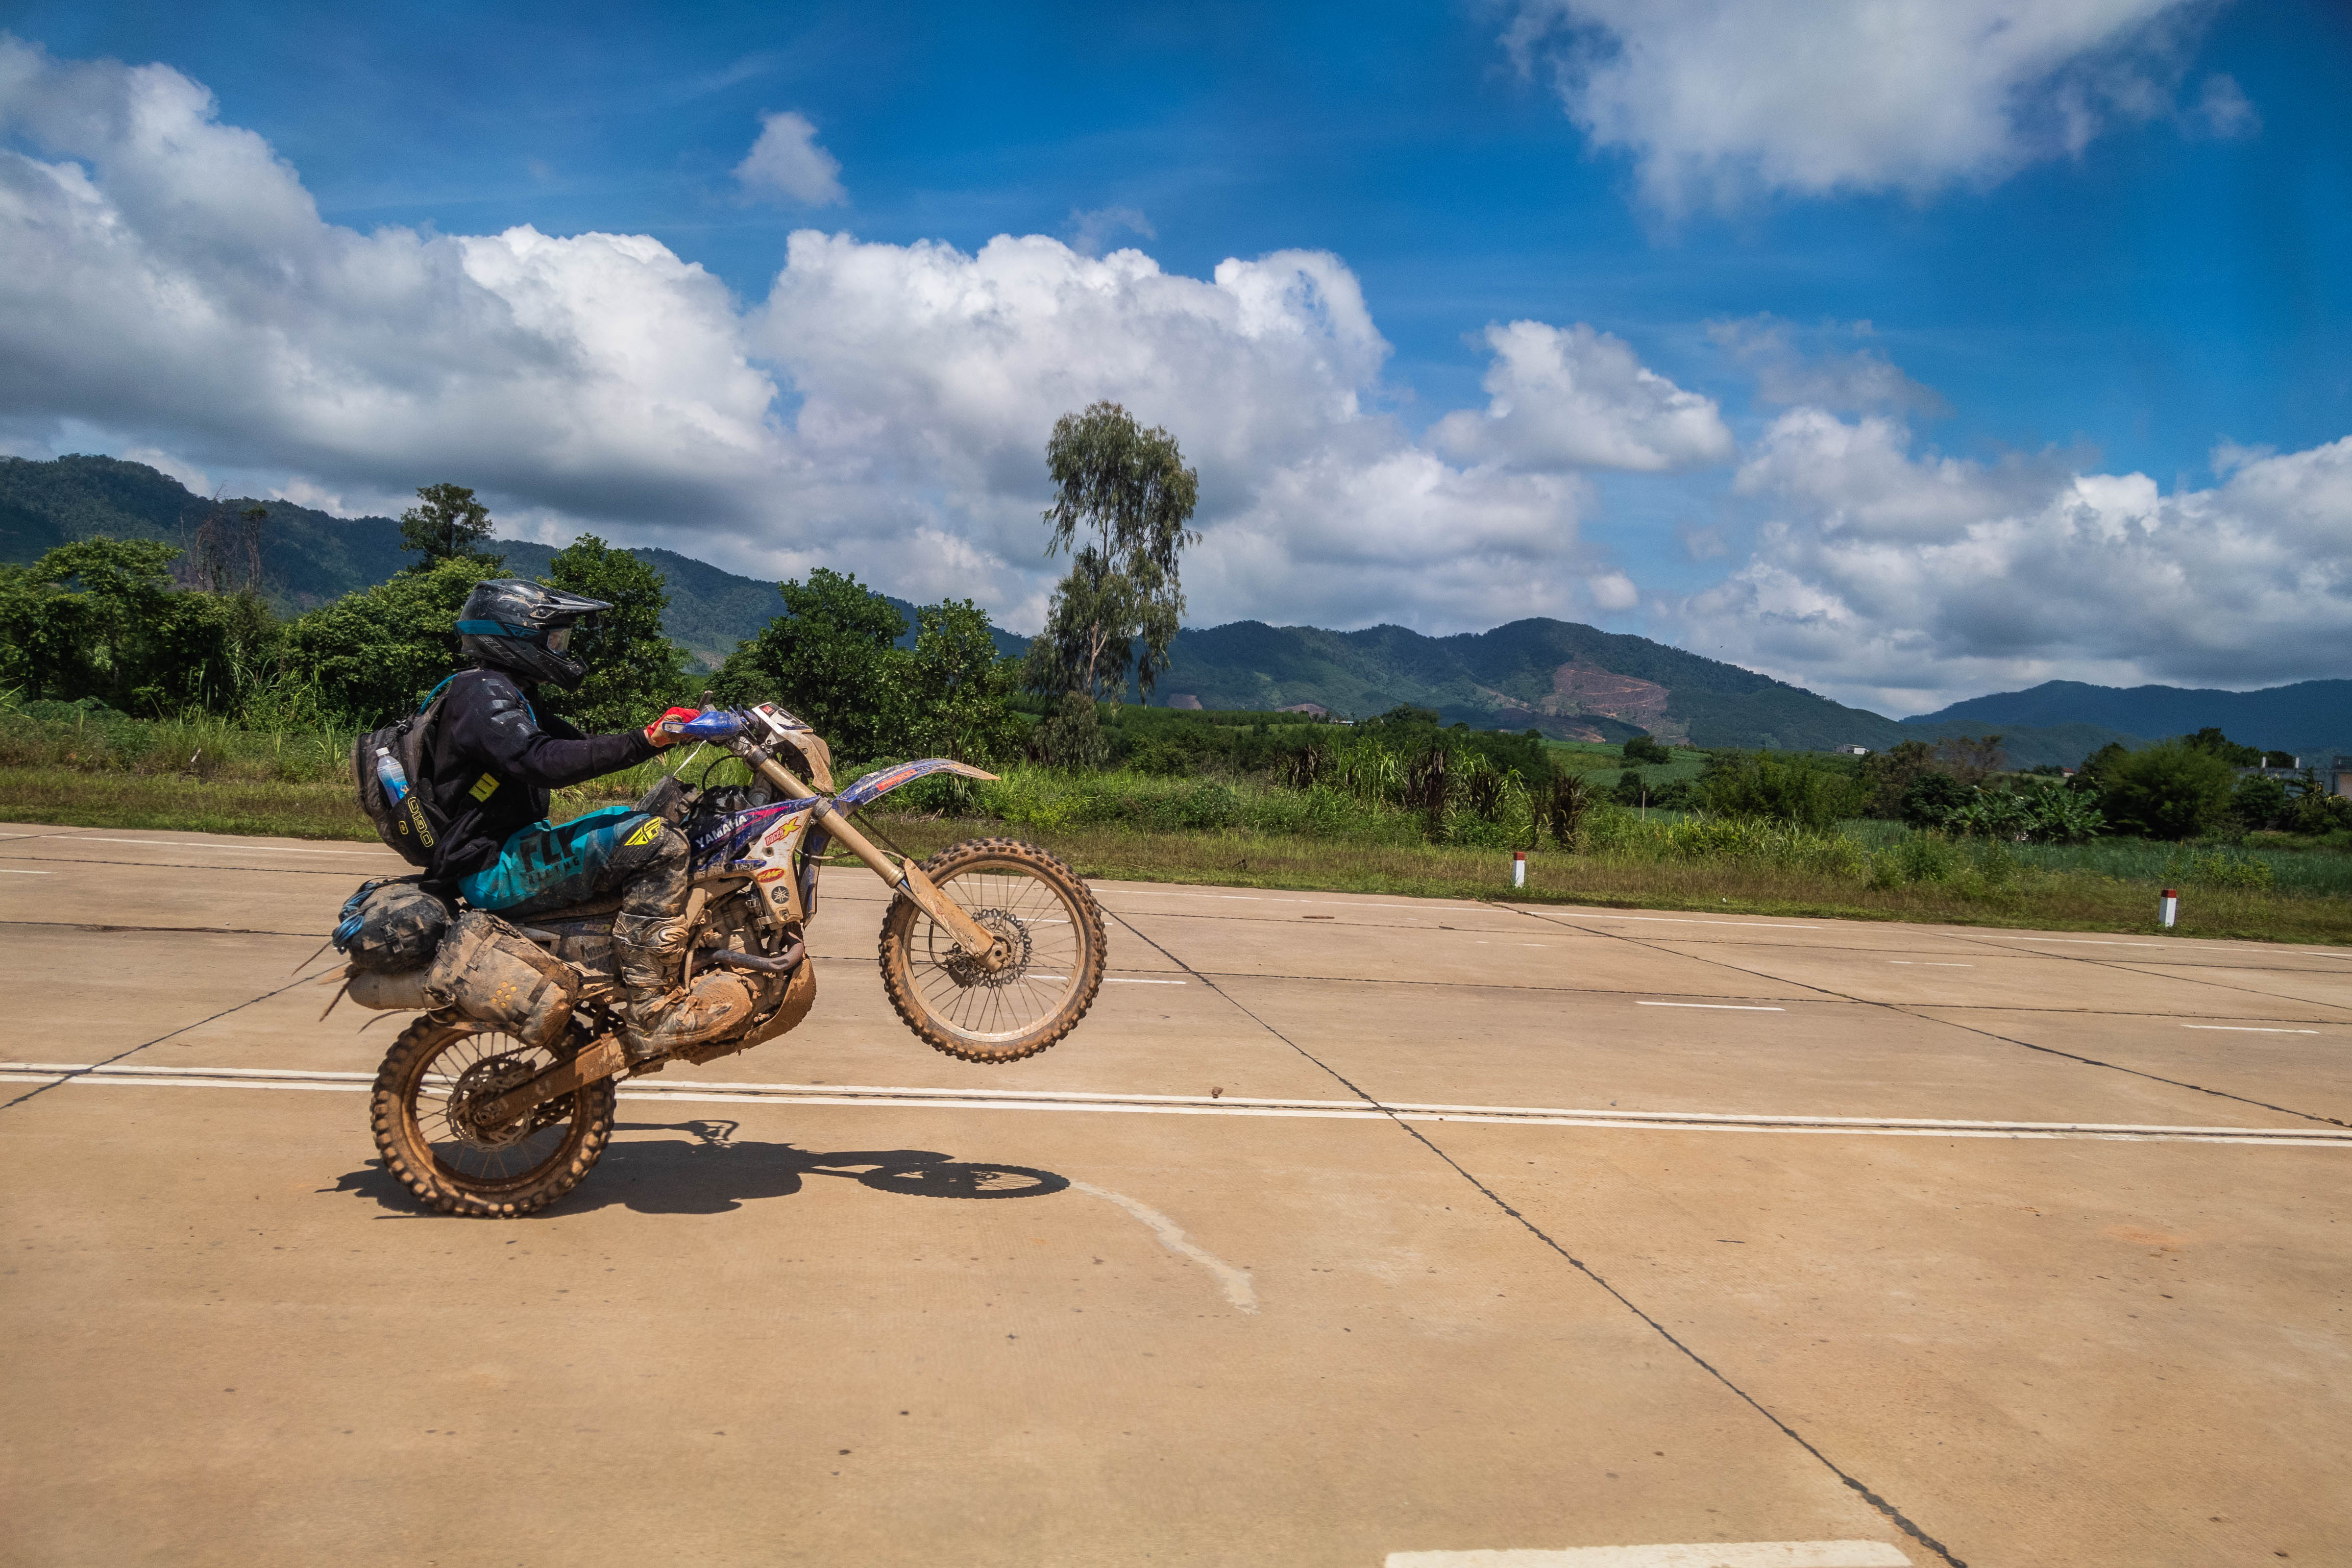 How to get into Off-Road Motorbiking